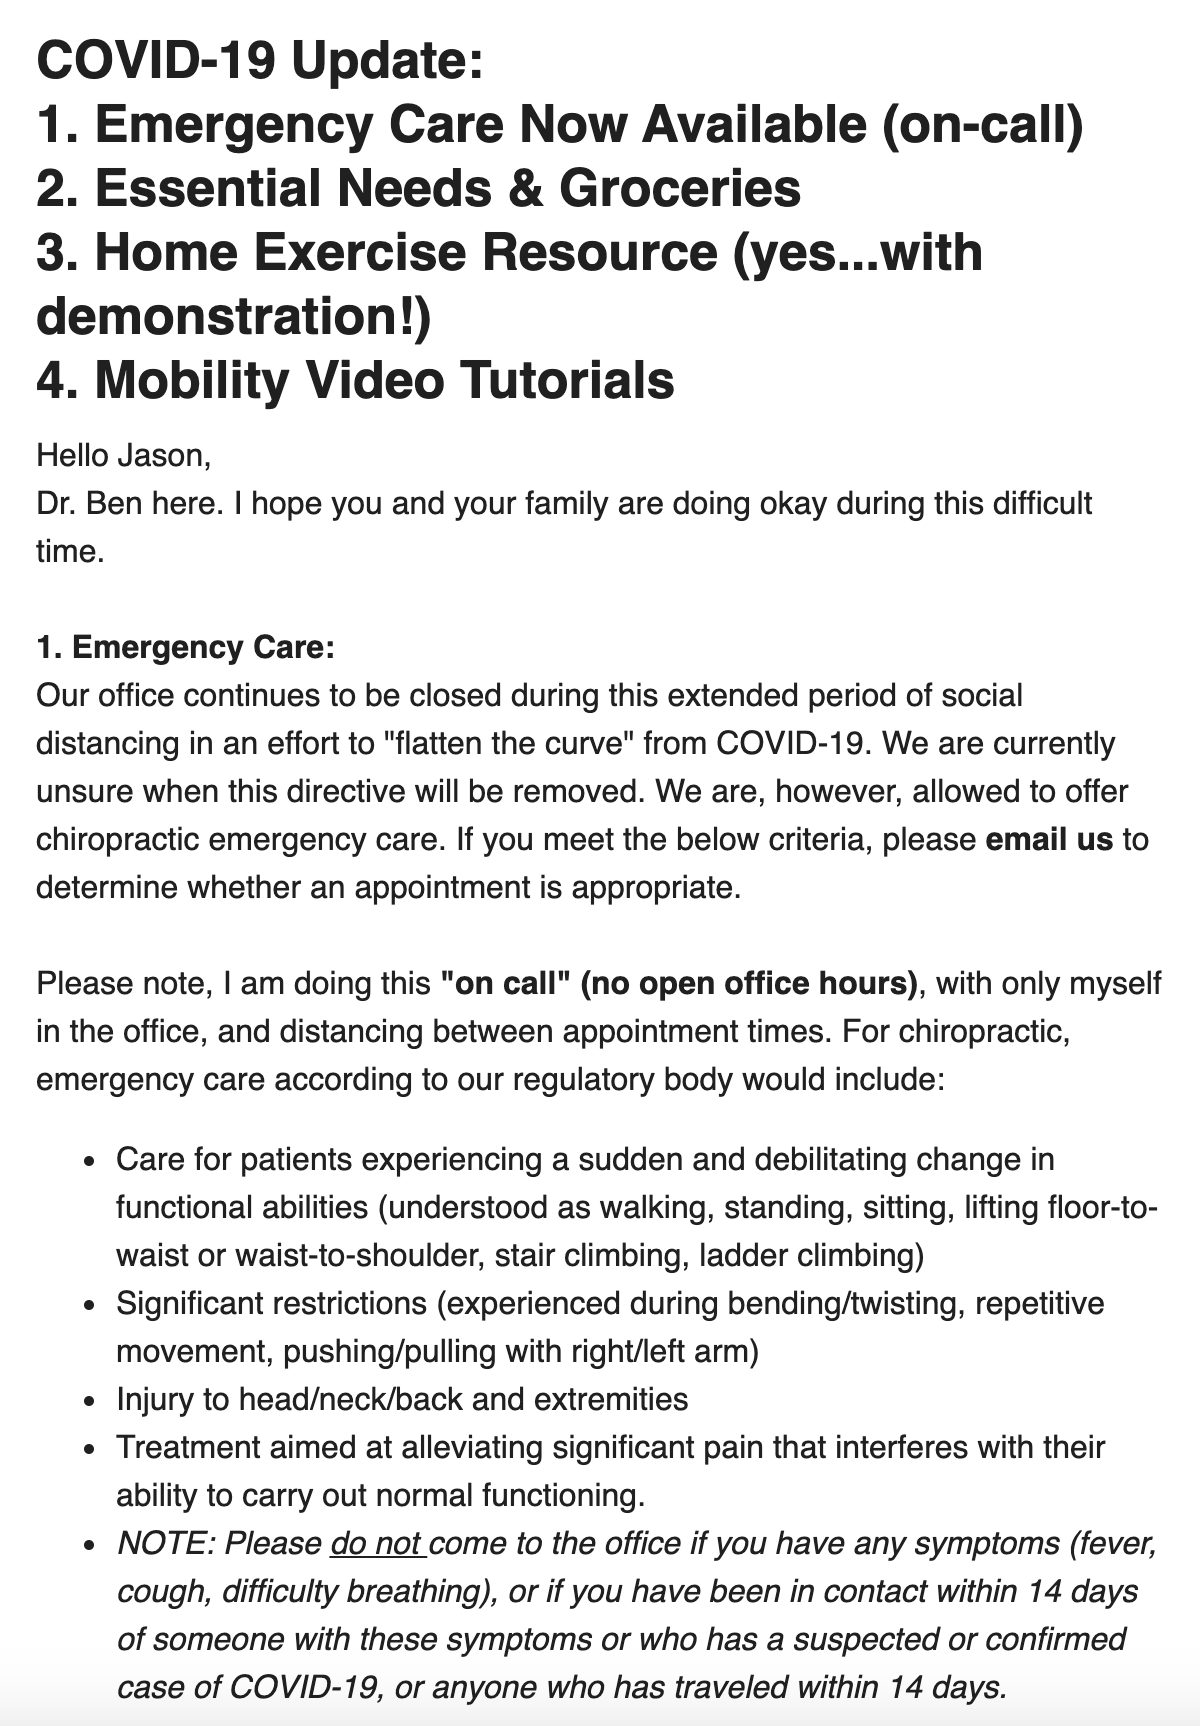 An email from Riverside Chiropractic to customers with information about their response to COVID-19